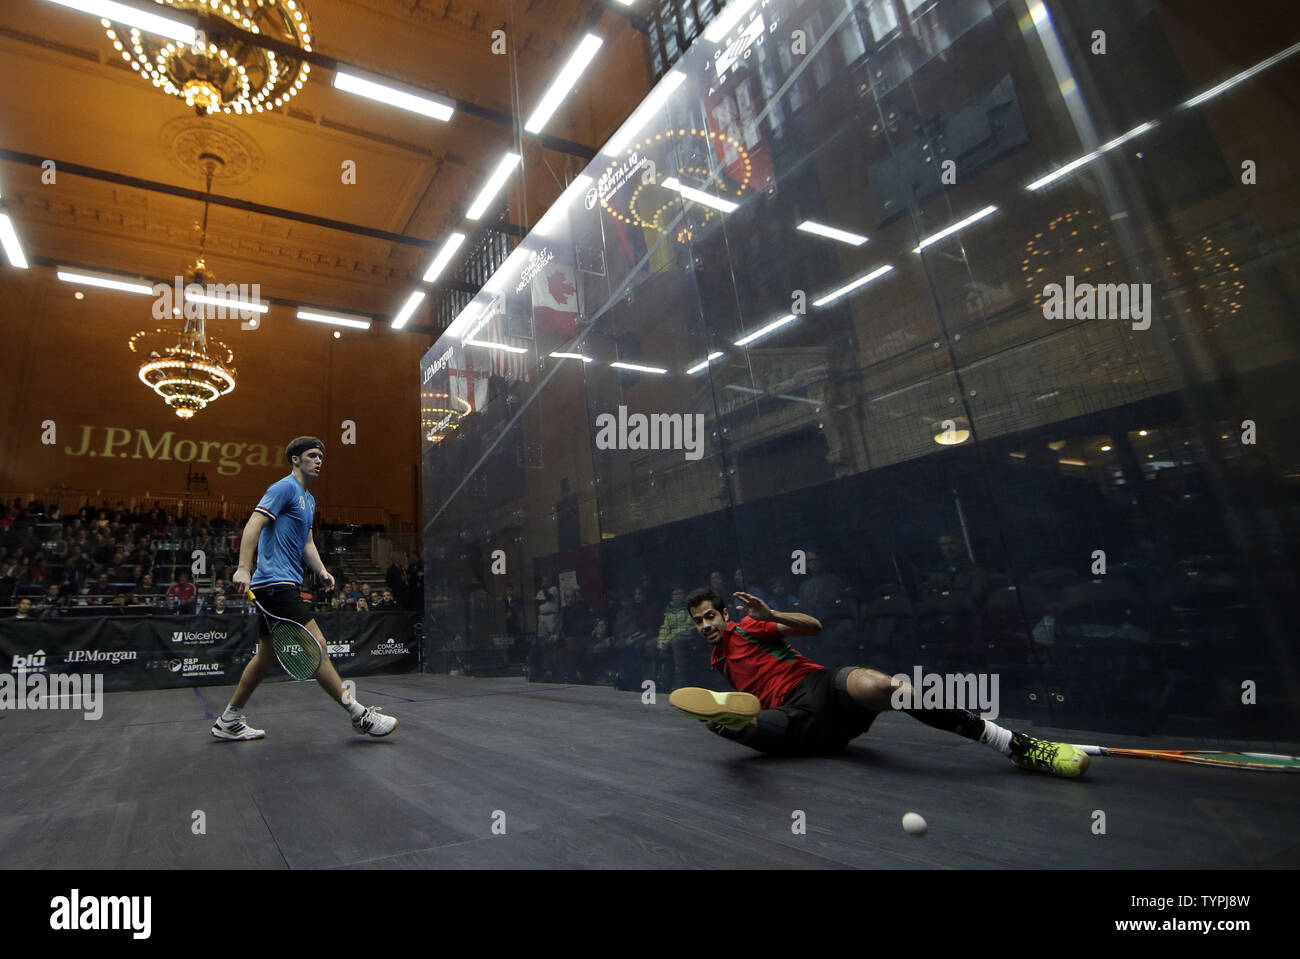 Chris Simpson of England watches Cesar Salazar of Mexico land on the court after diving for a ball at JPMorgan Chase & Co.'s 18th annual  'Tournament of Champions' Professional Squash Tournament in Grand Central Terminal in New York City on January 16, 2015. The annual tournament is scheduled to continue through January 23rd.       Photo by John Angelillo/UPI - Stock Image